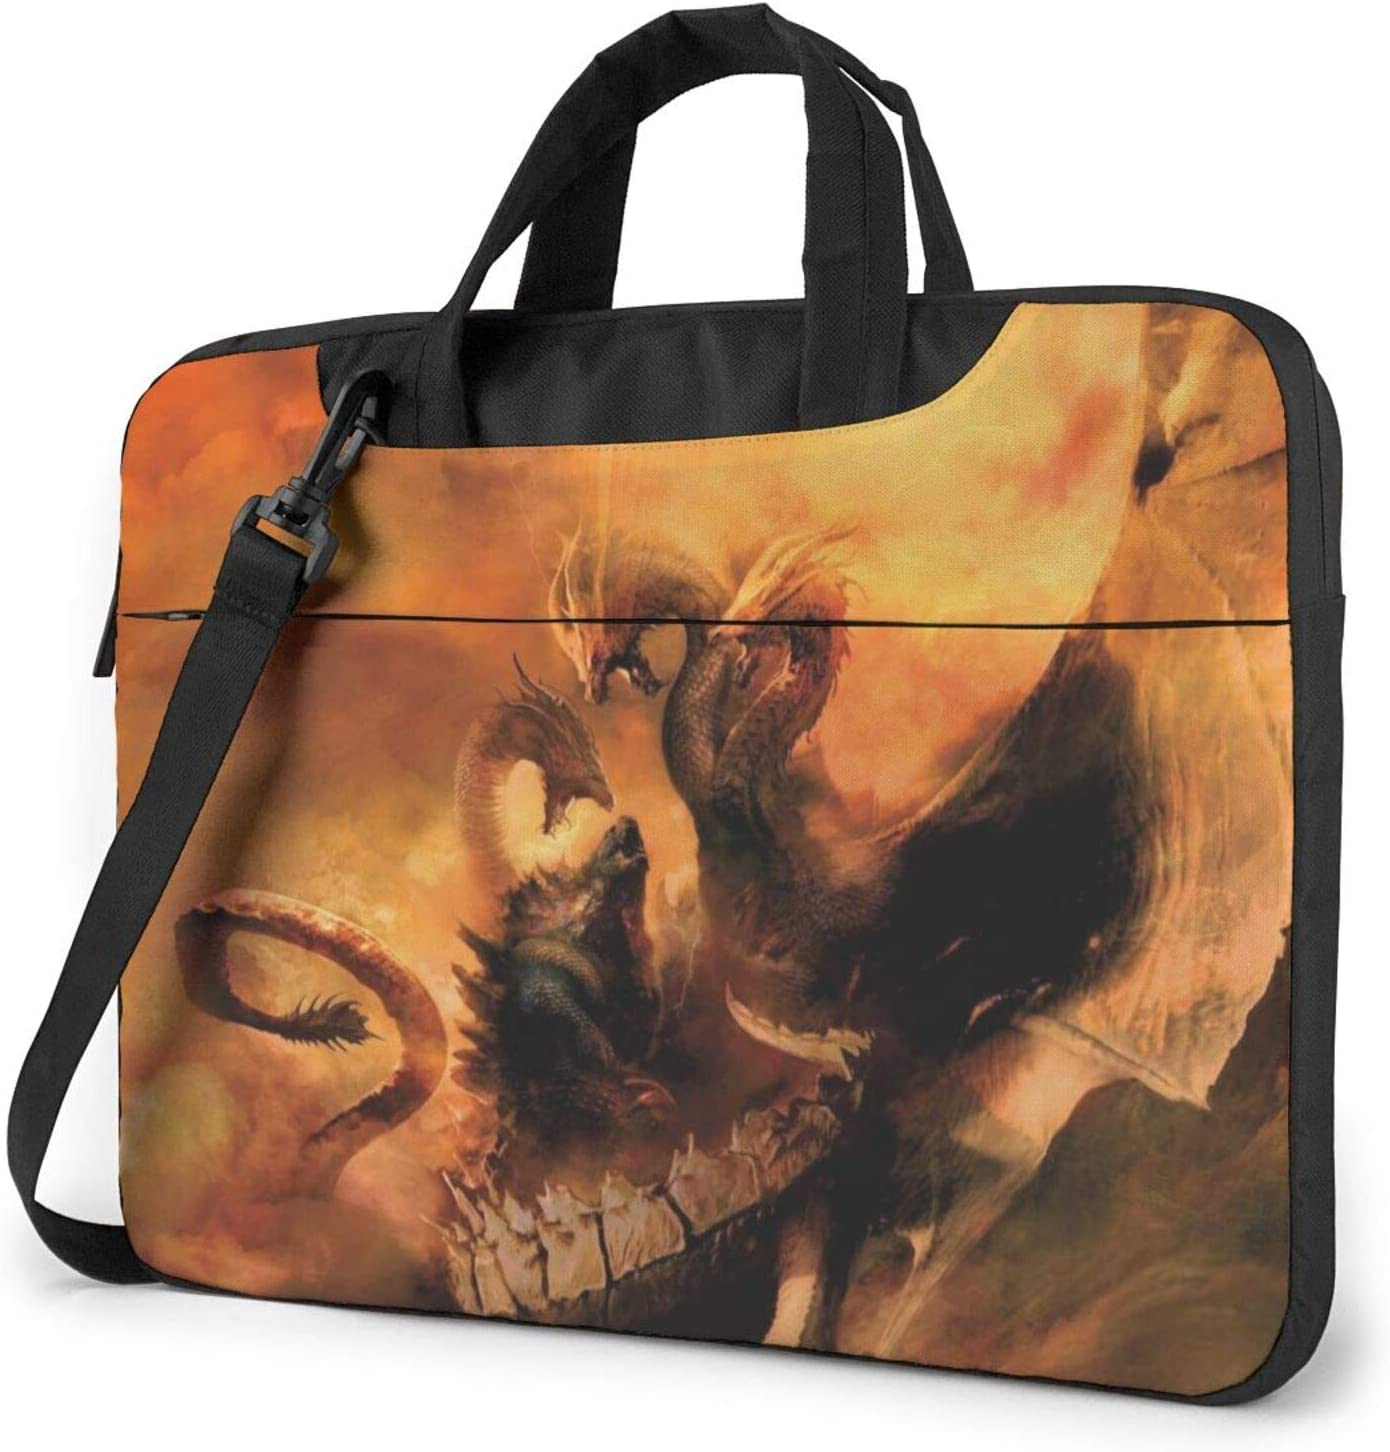 CHANGCHU5 Godzilla 13 14 15.6 Inch Laptop Carrying Bag - Protective Notebook Sleeve Case - Travel Briefcase Pouch with Handle 15.6 inch